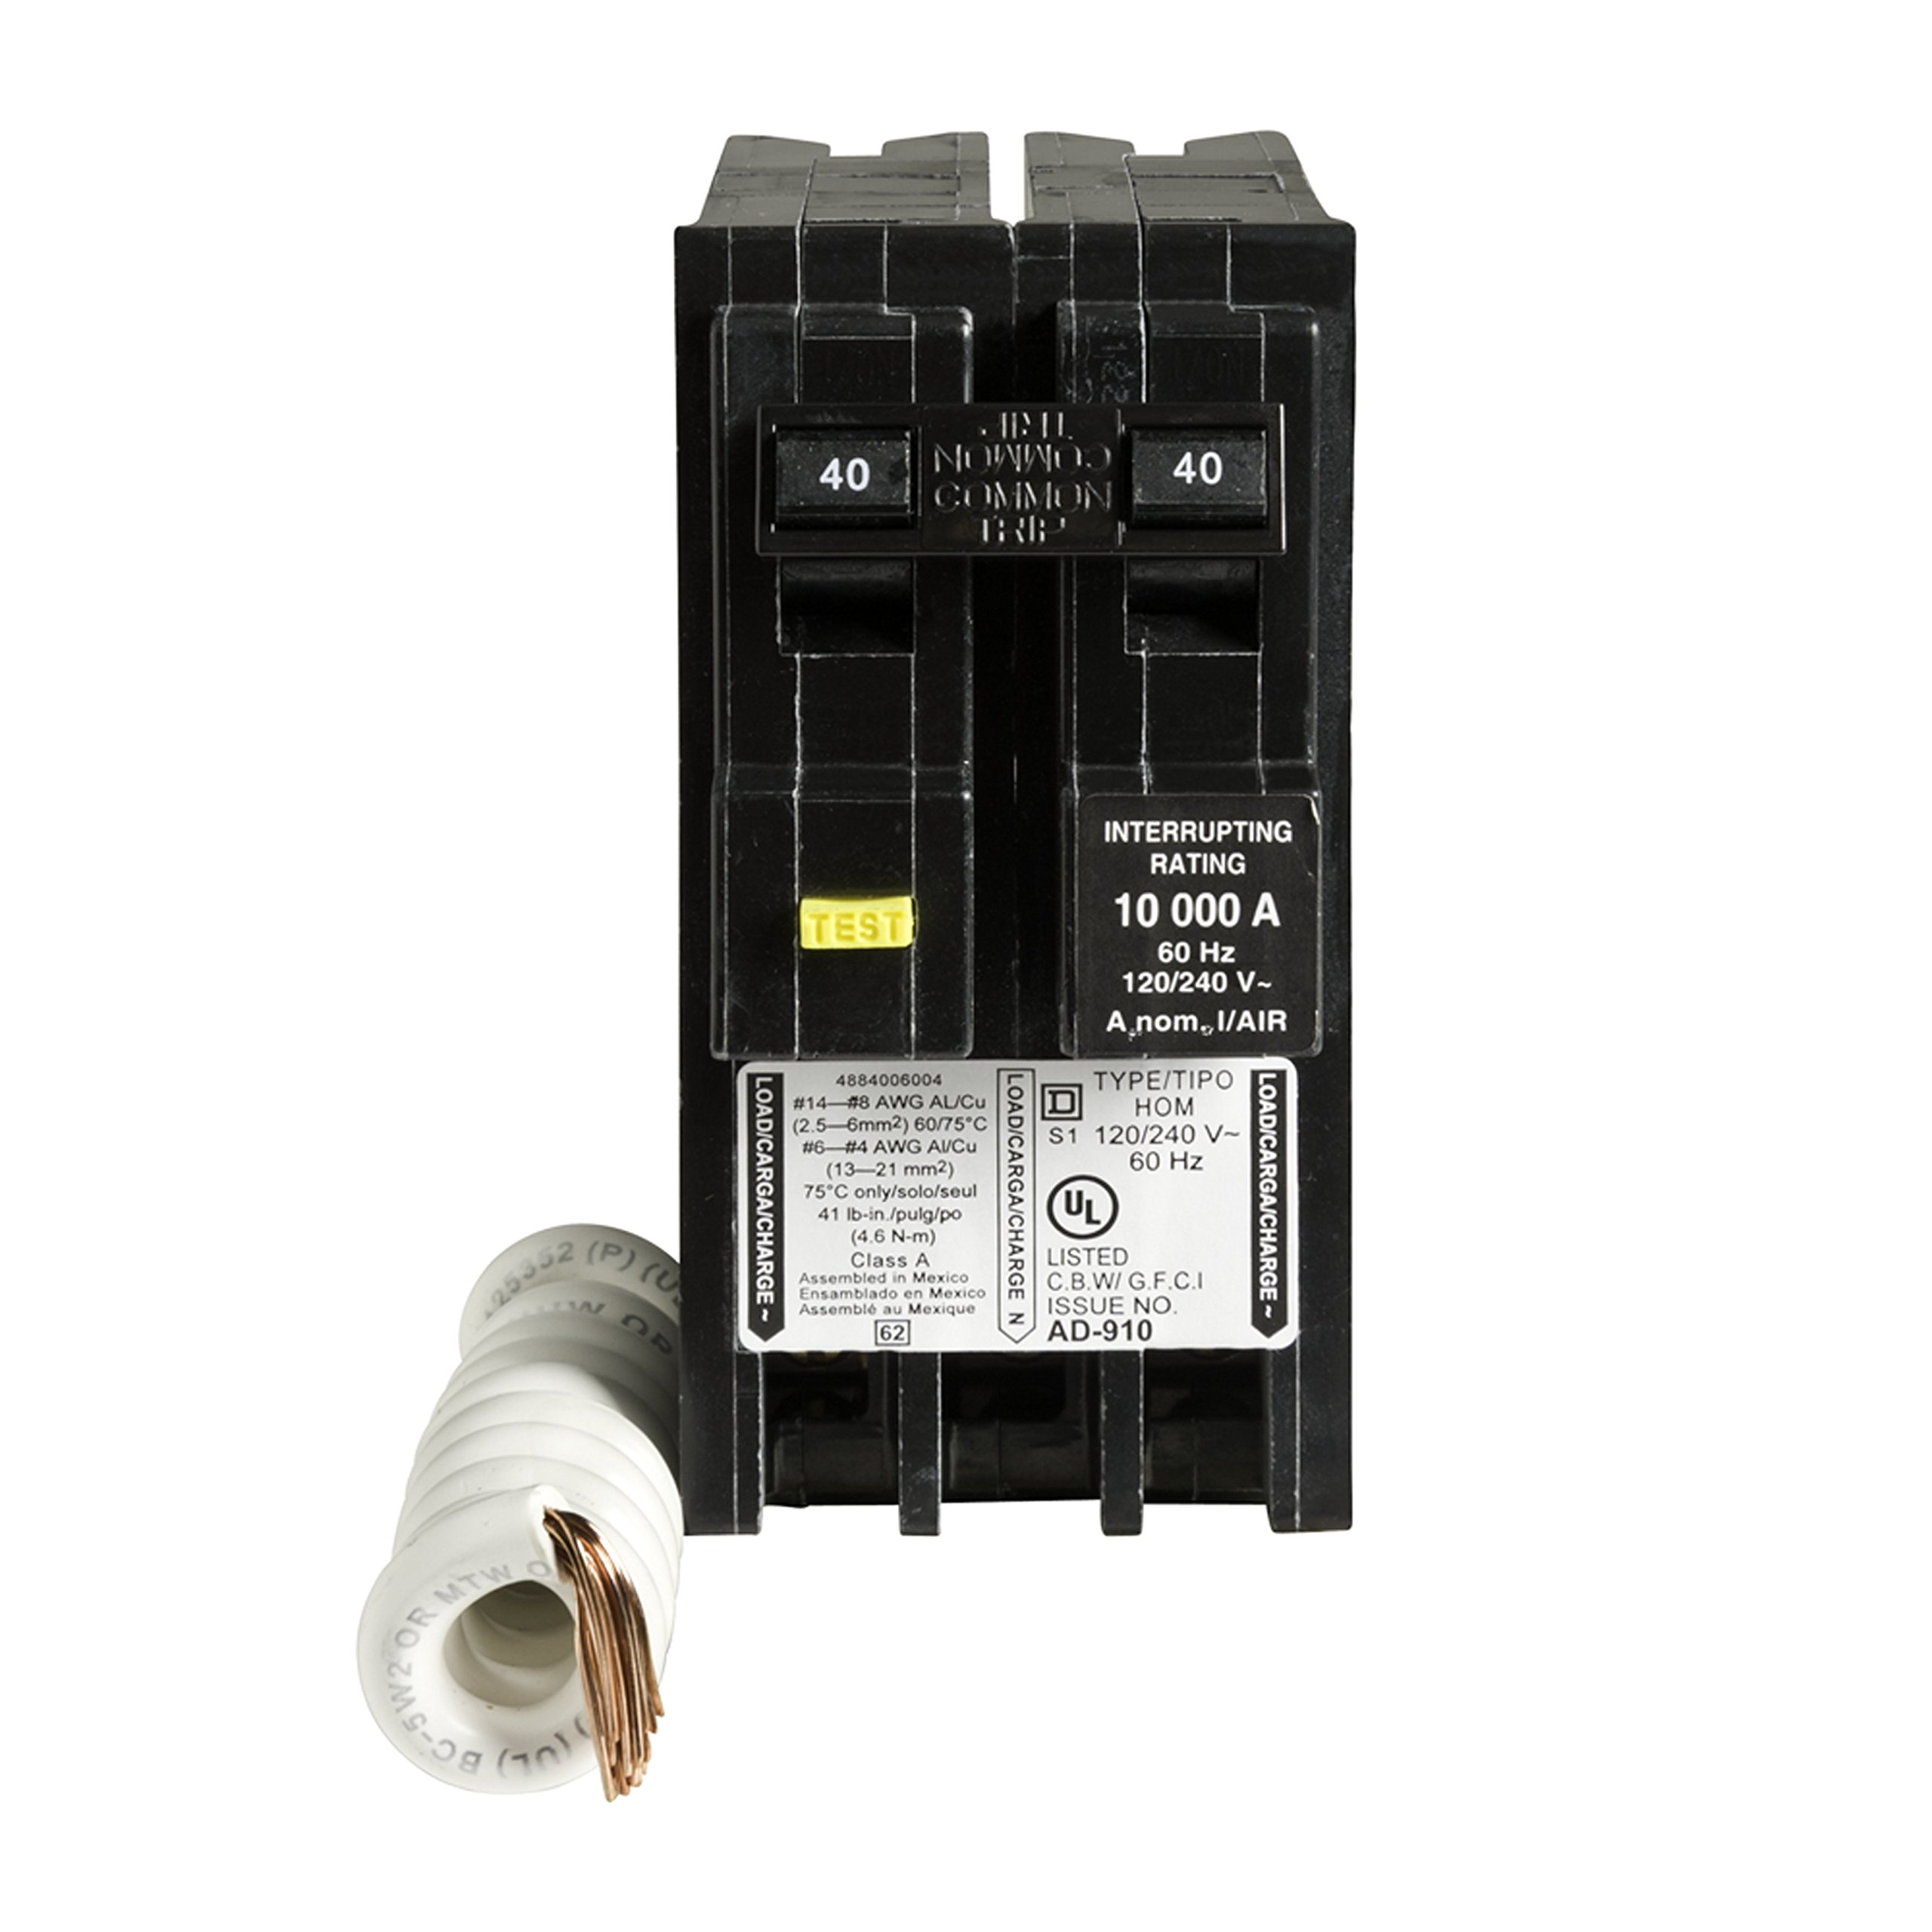 Square D by Schneider Electric HOM240GFIC Homeline 40 Amp Two-Pole GFCI Circuit Breaker, ,